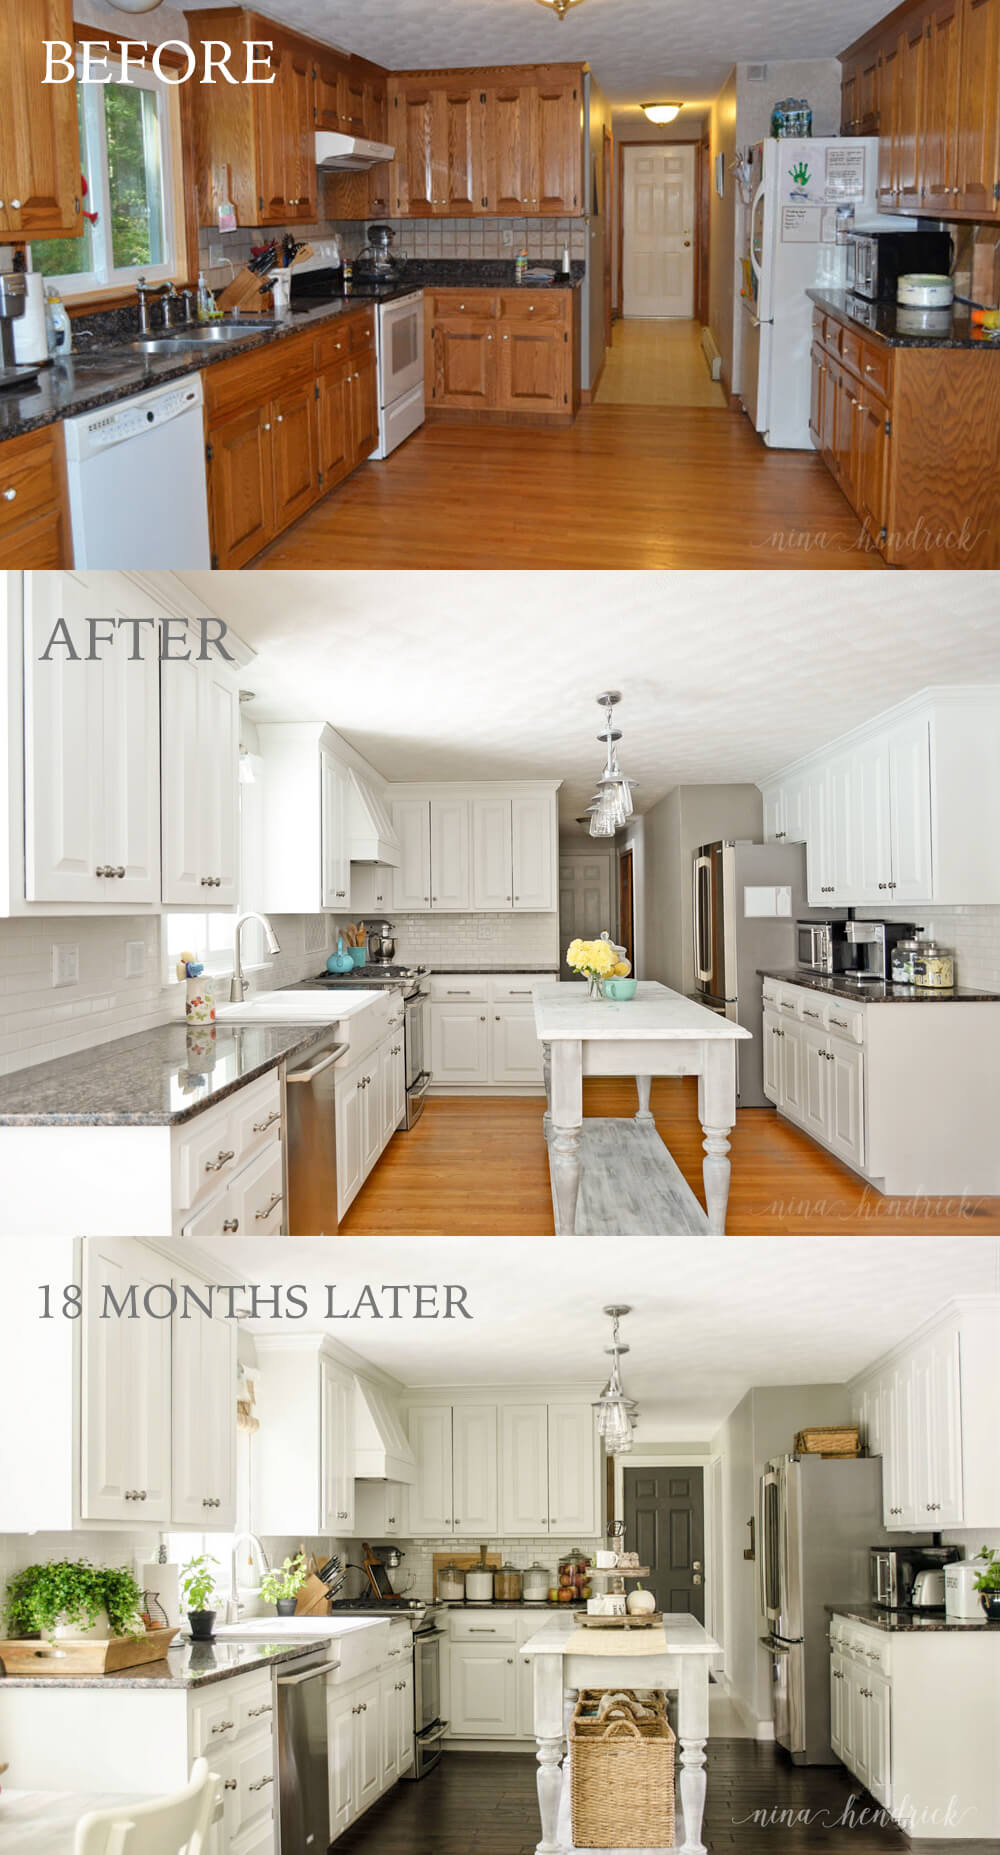 Lightening the Cabinets and Adding an Island